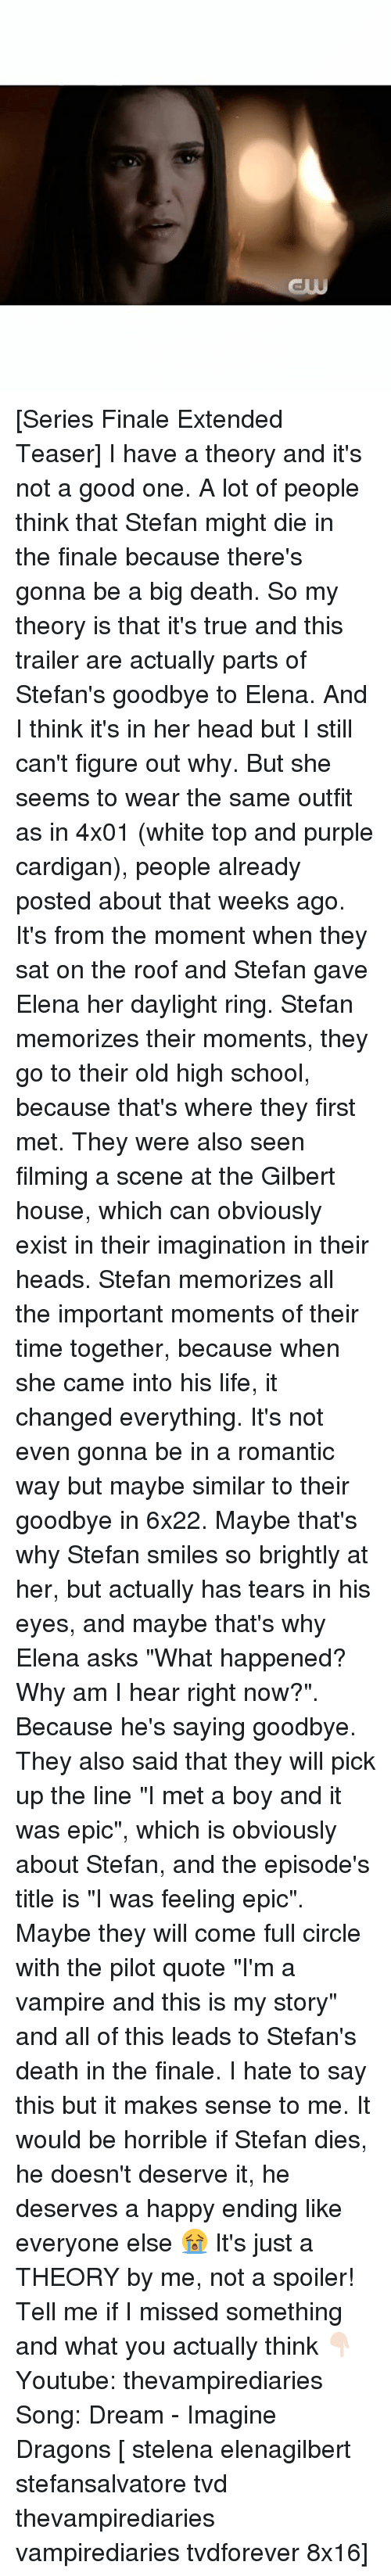 "Head, Life, and Memes: [Series Finale Extended Teaser] I have a theory and it's not a good one. A lot of people think that Stefan might die in the finale because there's gonna be a big death. So my theory is that it's true and this trailer are actually parts of Stefan's goodbye to Elena. And I think it's in her head but I still can't figure out why. But she seems to wear the same outfit as in 4x01 (white top and purple cardigan), people already posted about that weeks ago. It's from the moment when they sat on the roof and Stefan gave Elena her daylight ring. Stefan memorizes their moments, they go to their old high school, because that's where they first met. They were also seen filming a scene at the Gilbert house, which can obviously exist in their imagination in their heads. Stefan memorizes all the important moments of their time together, because when she came into his life, it changed everything. It's not even gonna be in a romantic way but maybe similar to their goodbye in 6x22. Maybe that's why Stefan smiles so brightly at her, but actually has tears in his eyes, and maybe that's why Elena asks ""What happened? Why am I hear right now?"". Because he's saying goodbye. They also said that they will pick up the line ""I met a boy and it was epic"", which is obviously about Stefan, and the episode's title is ""I was feeling epic"". Maybe they will come full circle with the pilot quote ""I'm a vampire and this is my story"" and all of this leads to Stefan's death in the finale. I hate to say this but it makes sense to me. It would be horrible if Stefan dies, he doesn't deserve it, he deserves a happy ending like everyone else 😭 It's just a THEORY by me, not a spoiler! Tell me if I missed something and what you actually think 👇🏻 ⠀ Youtube: thevampirediaries Song: Dream - Imagine Dragons [ stelena elenagilbert stefansalvatore tvd thevampirediaries vampirediaries tvdforever 8x16]"